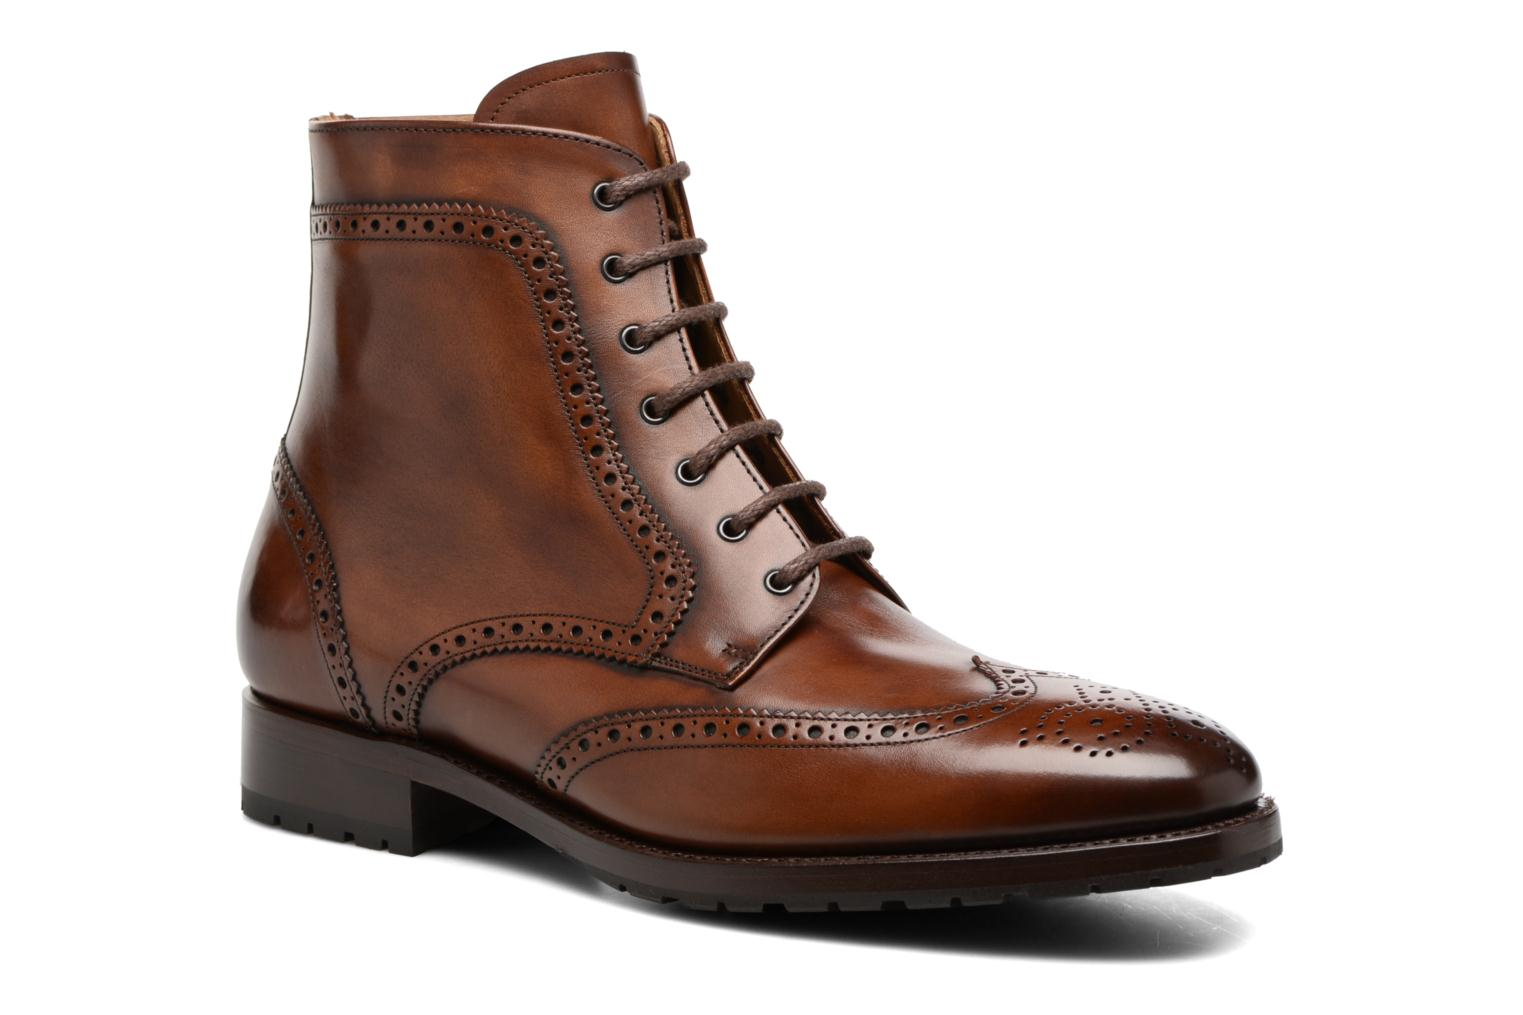 Bottines et boots Marvin&Co Luxe Westner - Goodyear Marron vue détail/paire